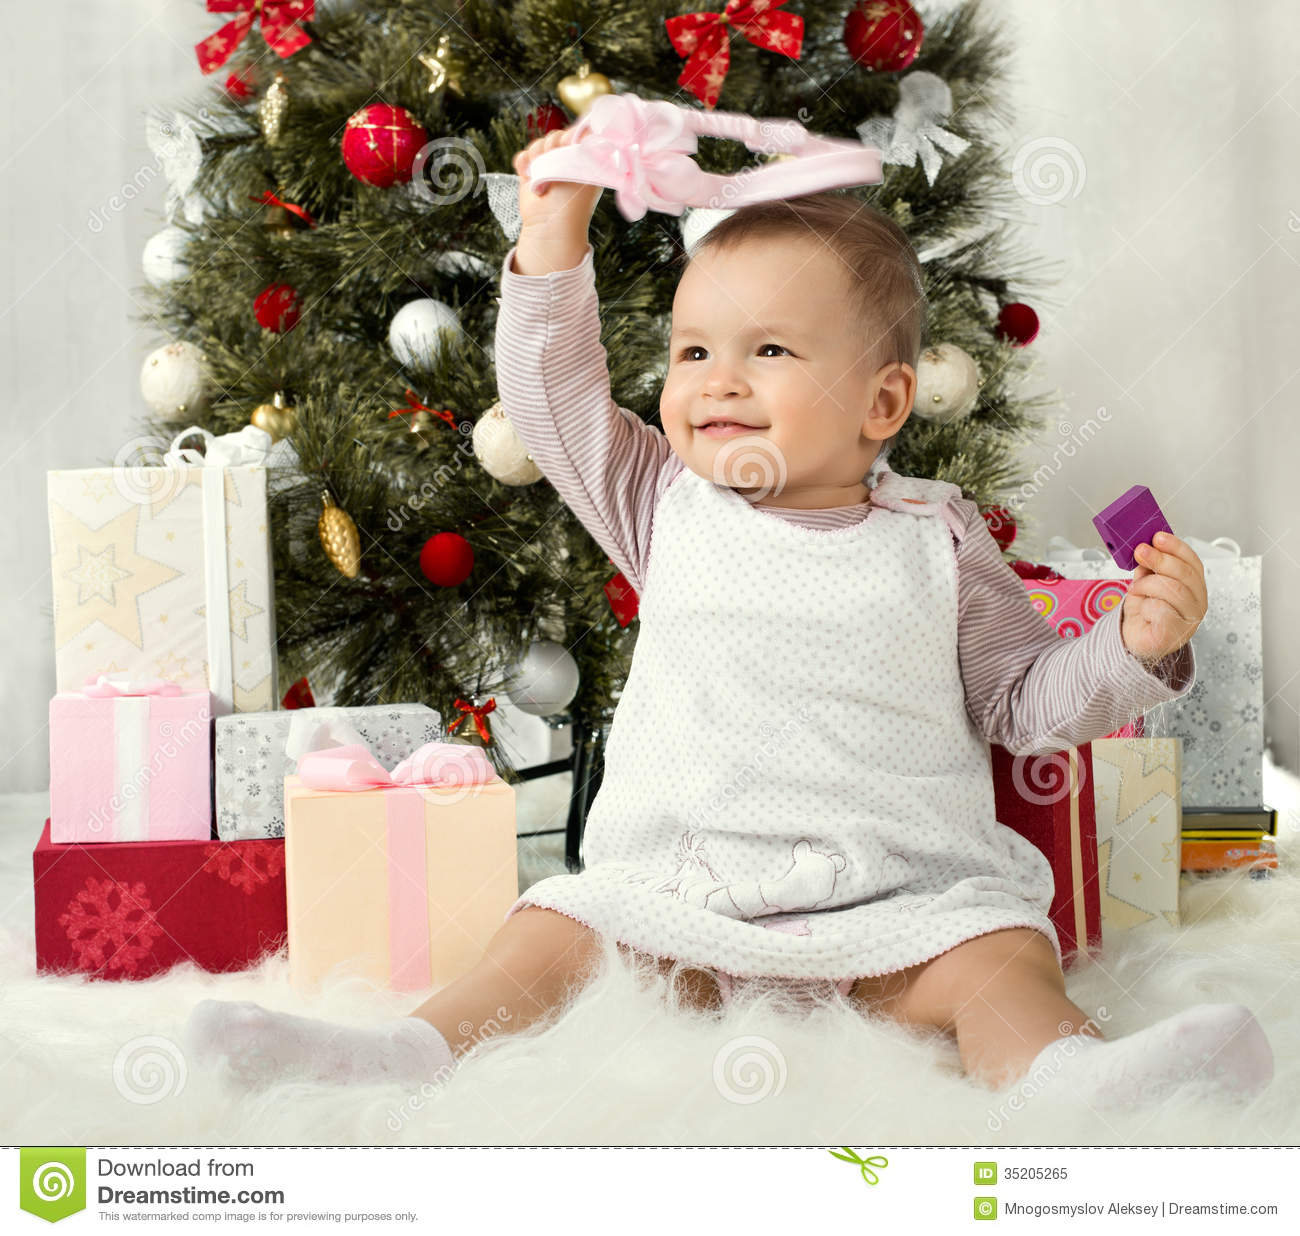 Little Girl Christmas Tree: Baby Girl Stock Image. Image Of Fir, Tree, Gift, One